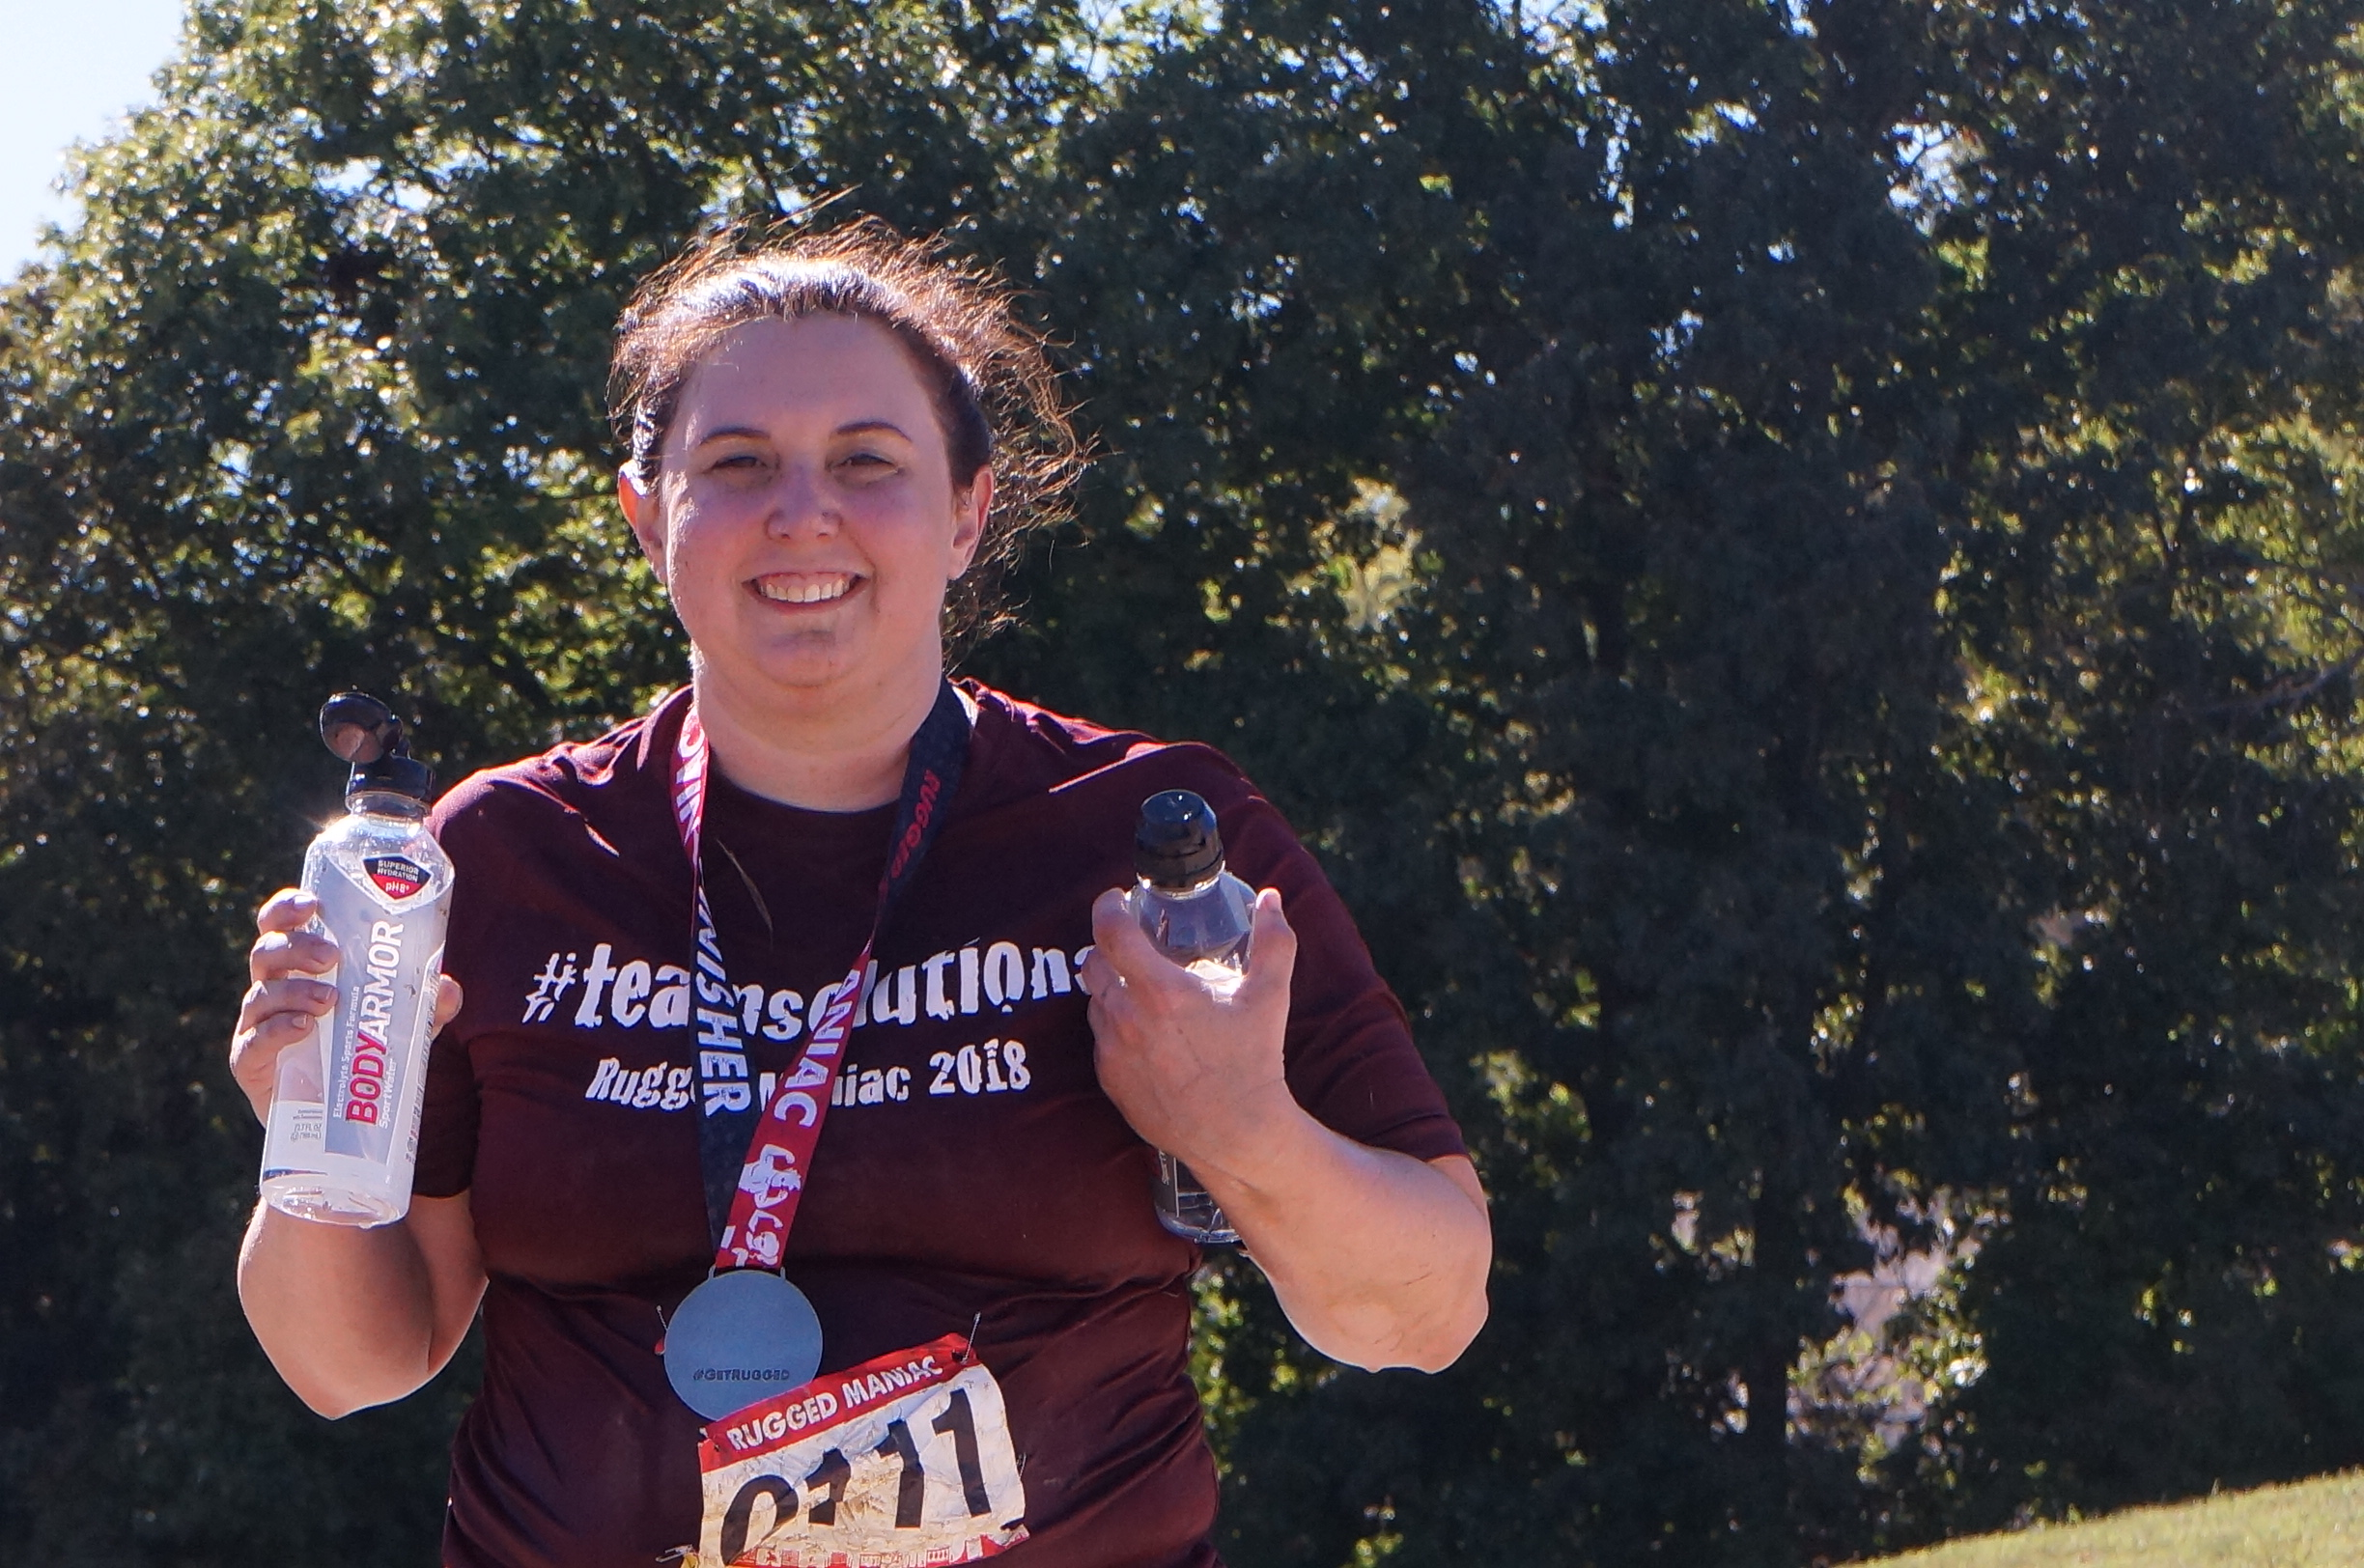 Carisa showing her finisher's medal with a big proud smile.